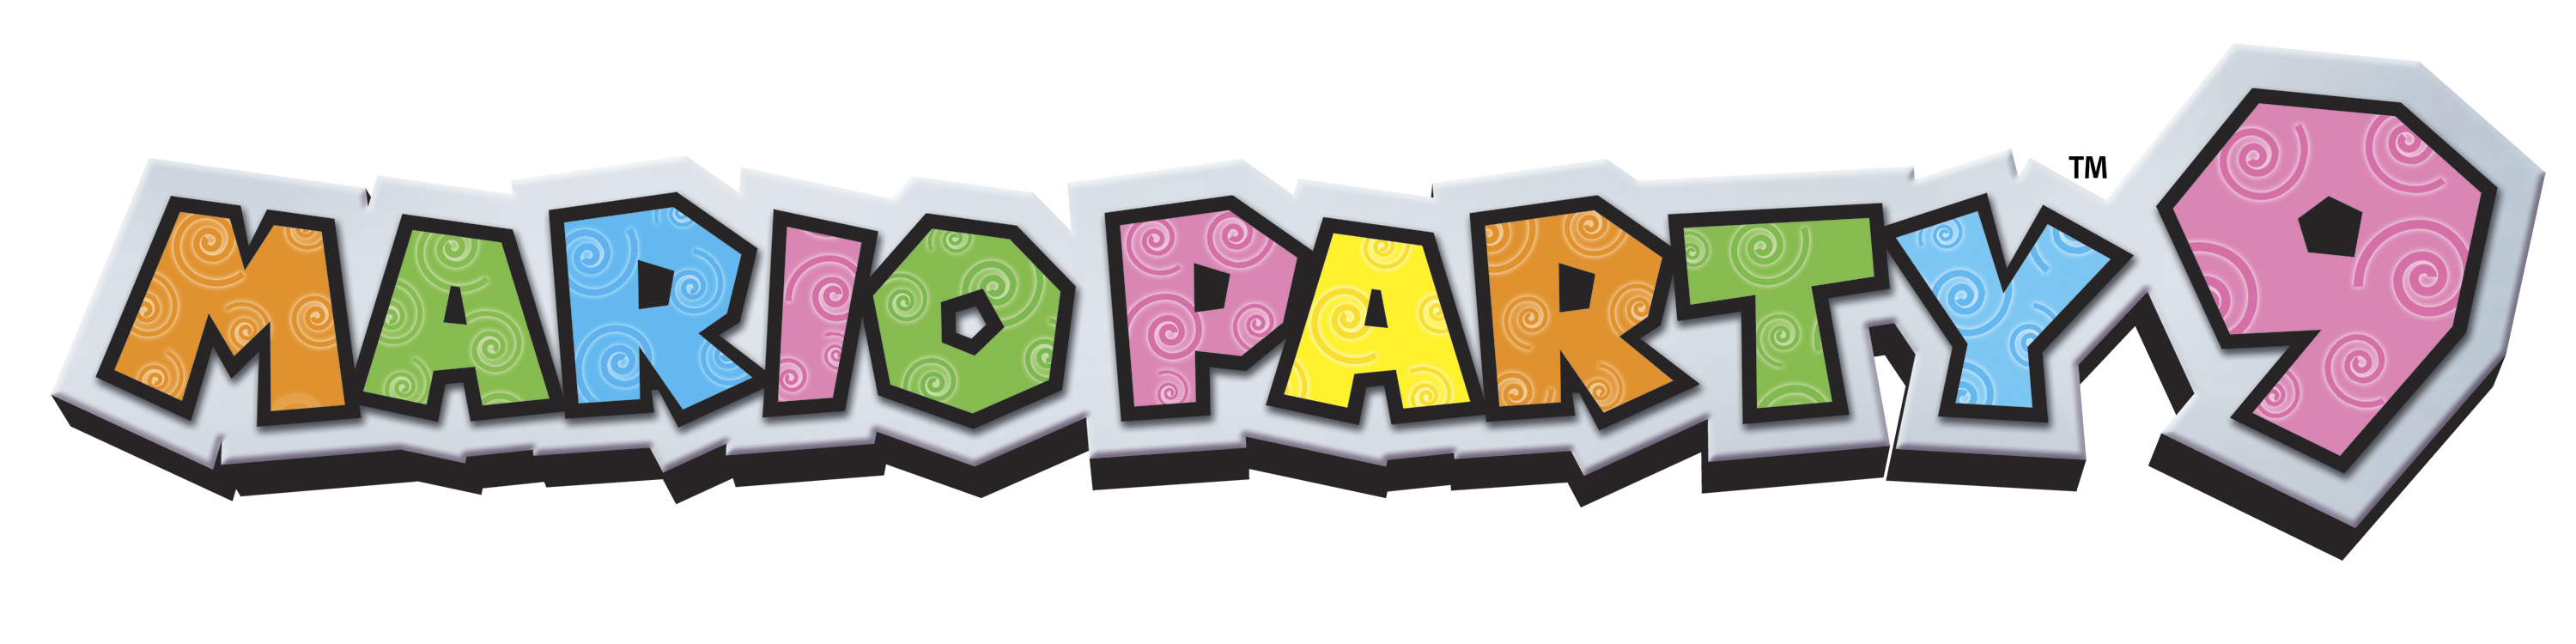 Mario Party Island Ds Review